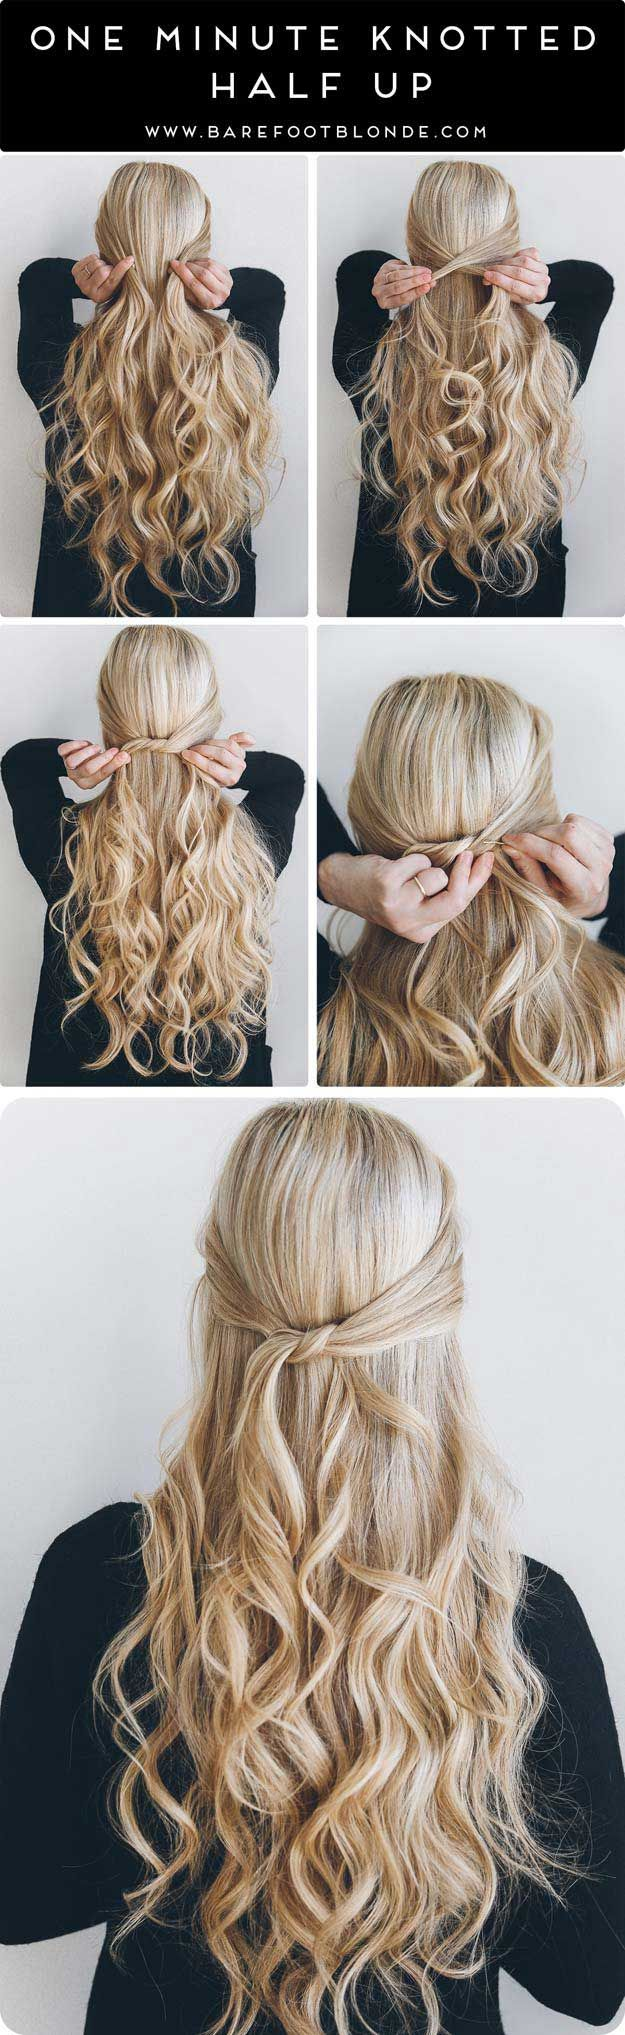 31 amazing half up-half down hairstyles for long hair | hair